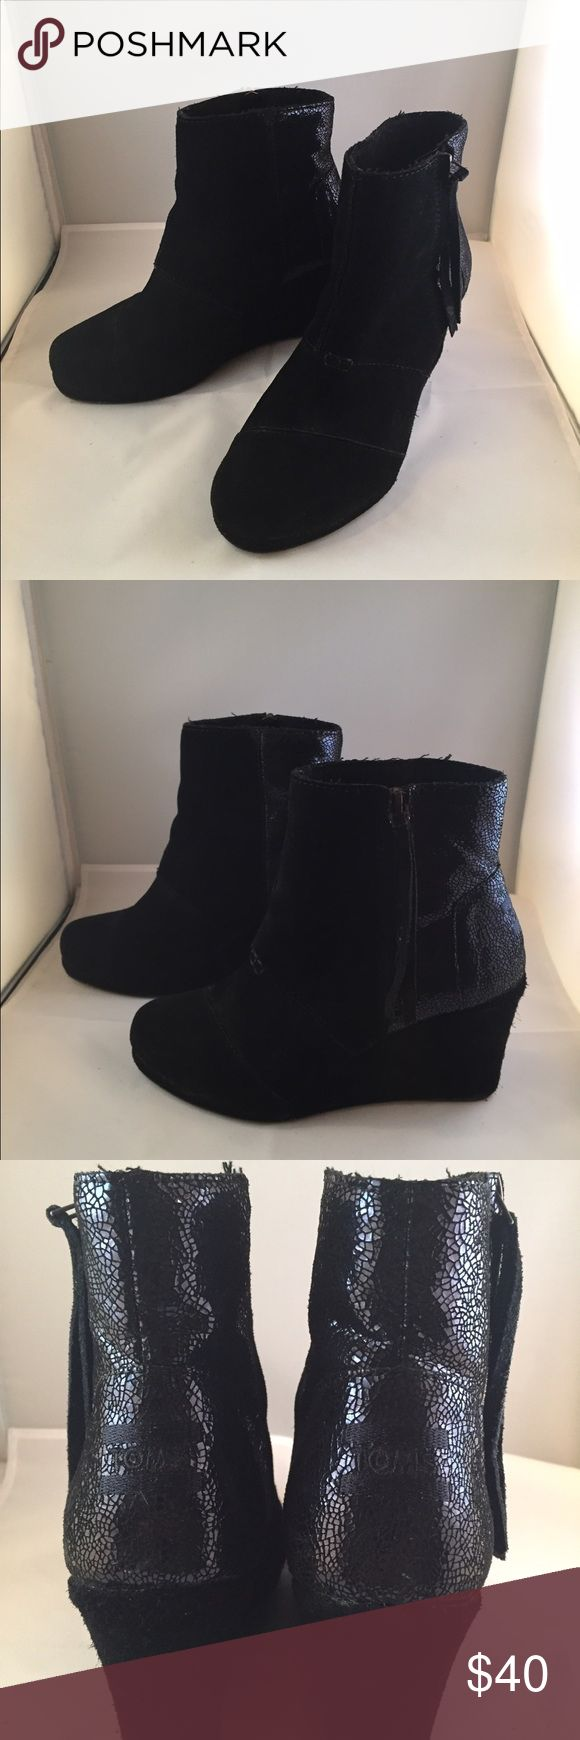 TOMS Black Suede Wedge Boots Women's Size 7 TOMS Black Suede Wedge Boots Women's Size 7.  Back of the ankle has a shimmer like detail. Worn a handful of times.  Super cute, but pregnancy did a number on my feet, and now my loss is your gain! TOMS Shoes Ankle Boots & Booties